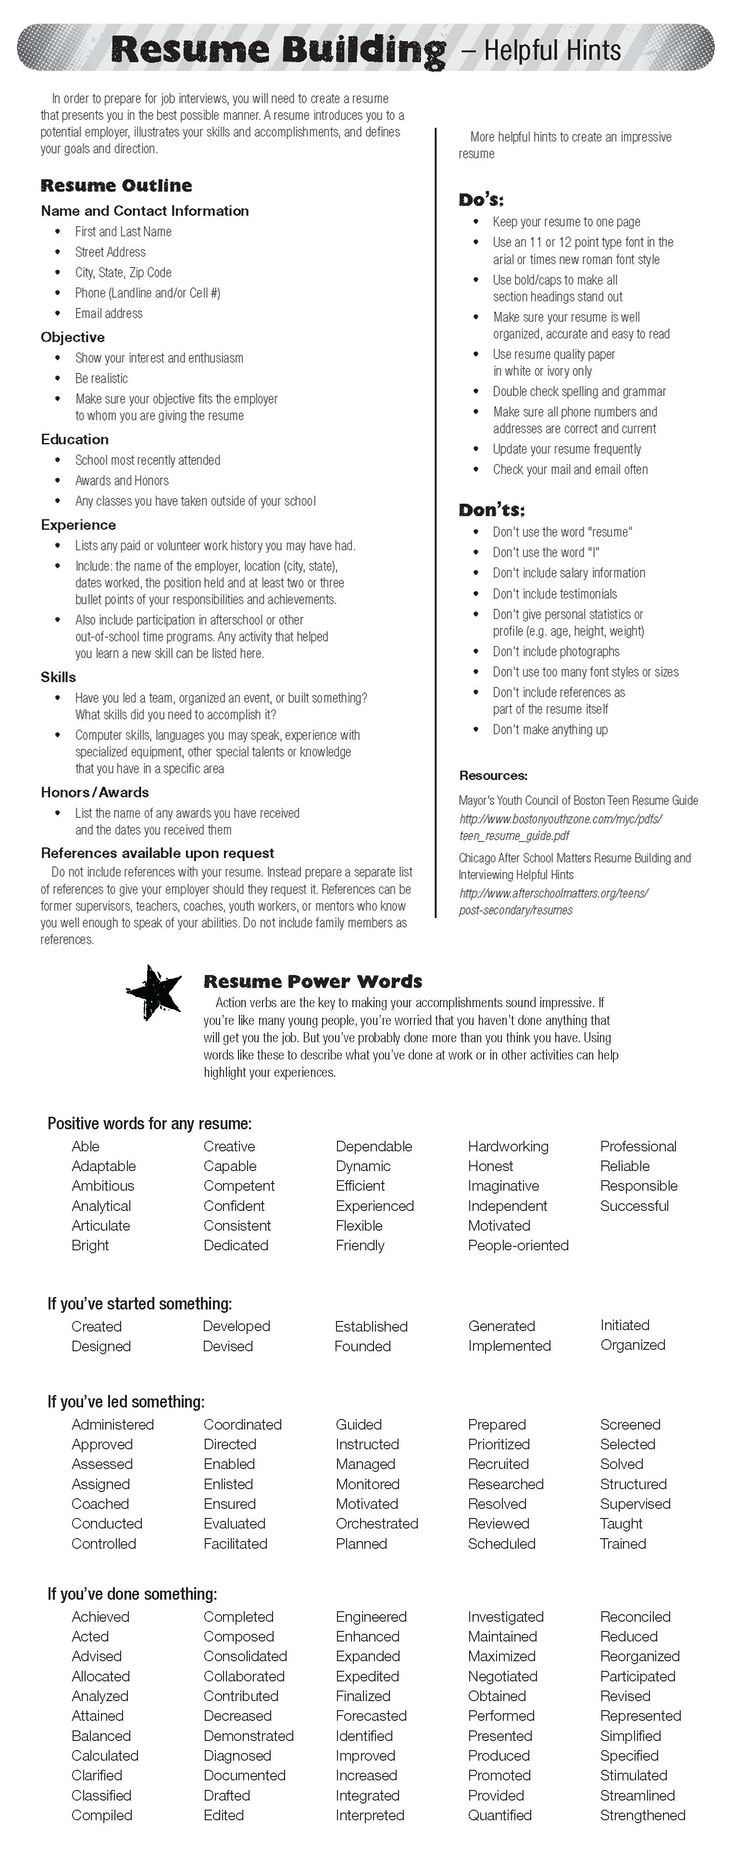 Opposenewapstandardsus  Fascinating  Ideas About Resume On Pinterest  Cv Format Resume Cv And  With Fair  Ideas About Resume On Pinterest  Cv Format Resume Cv And Resume Templates With Appealing How To Make A Reference Page For Resume Also Resume Jobs In Addition Sample Of Resume Cover Letter And Free Resume Layout As Well As Resume Example For Jobs Additionally Basic Resume Template Word From Pinterestcom With Opposenewapstandardsus  Fair  Ideas About Resume On Pinterest  Cv Format Resume Cv And  With Appealing  Ideas About Resume On Pinterest  Cv Format Resume Cv And Resume Templates And Fascinating How To Make A Reference Page For Resume Also Resume Jobs In Addition Sample Of Resume Cover Letter From Pinterestcom